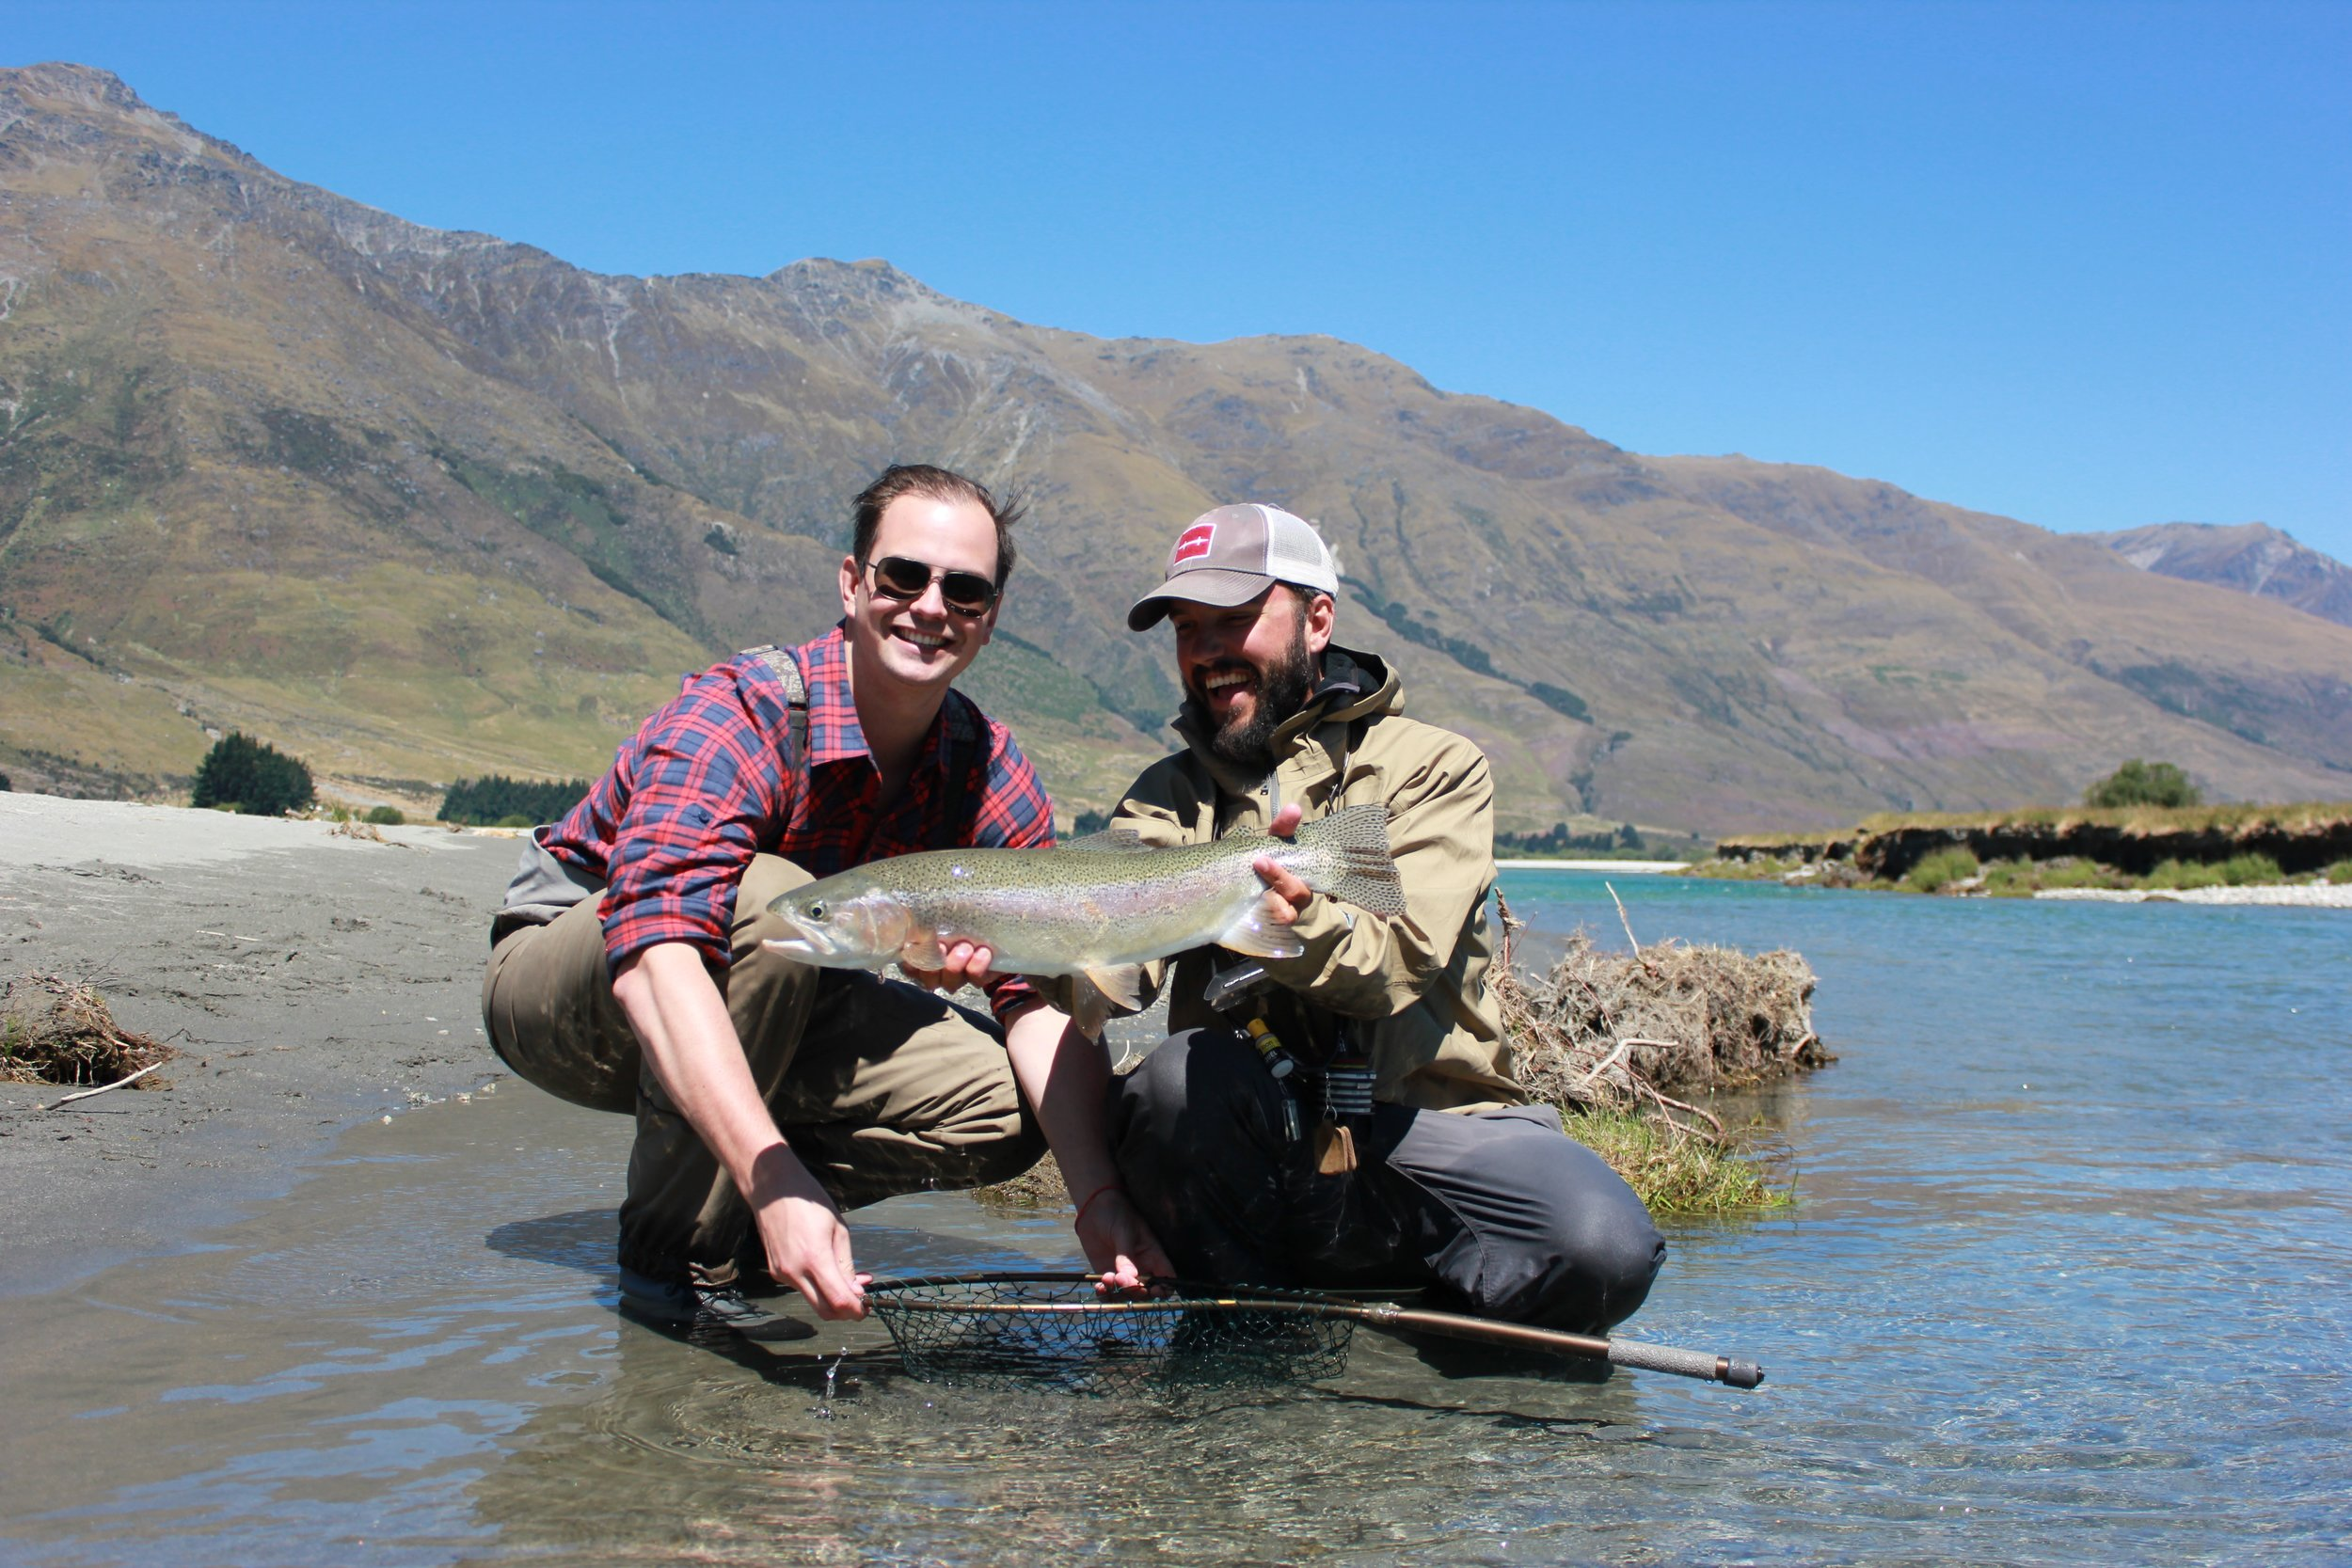 New Zealand fly fishing guide Jeff Forsee with a happy angler